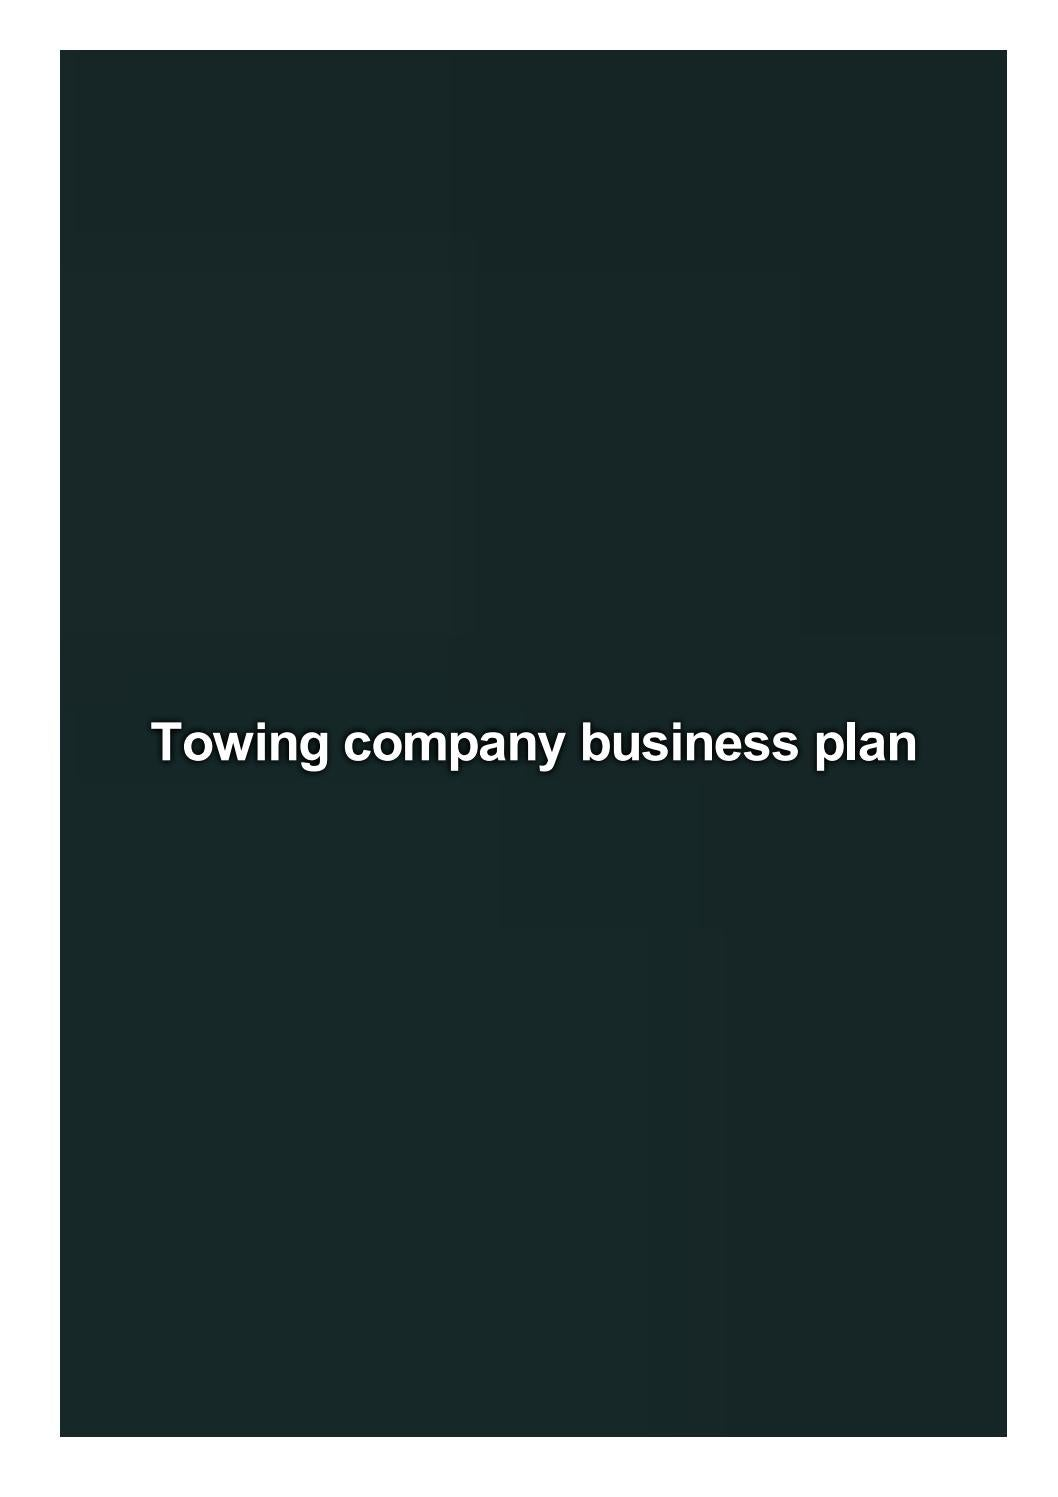 Free business plan for towing company quantitative thesis chapter 3